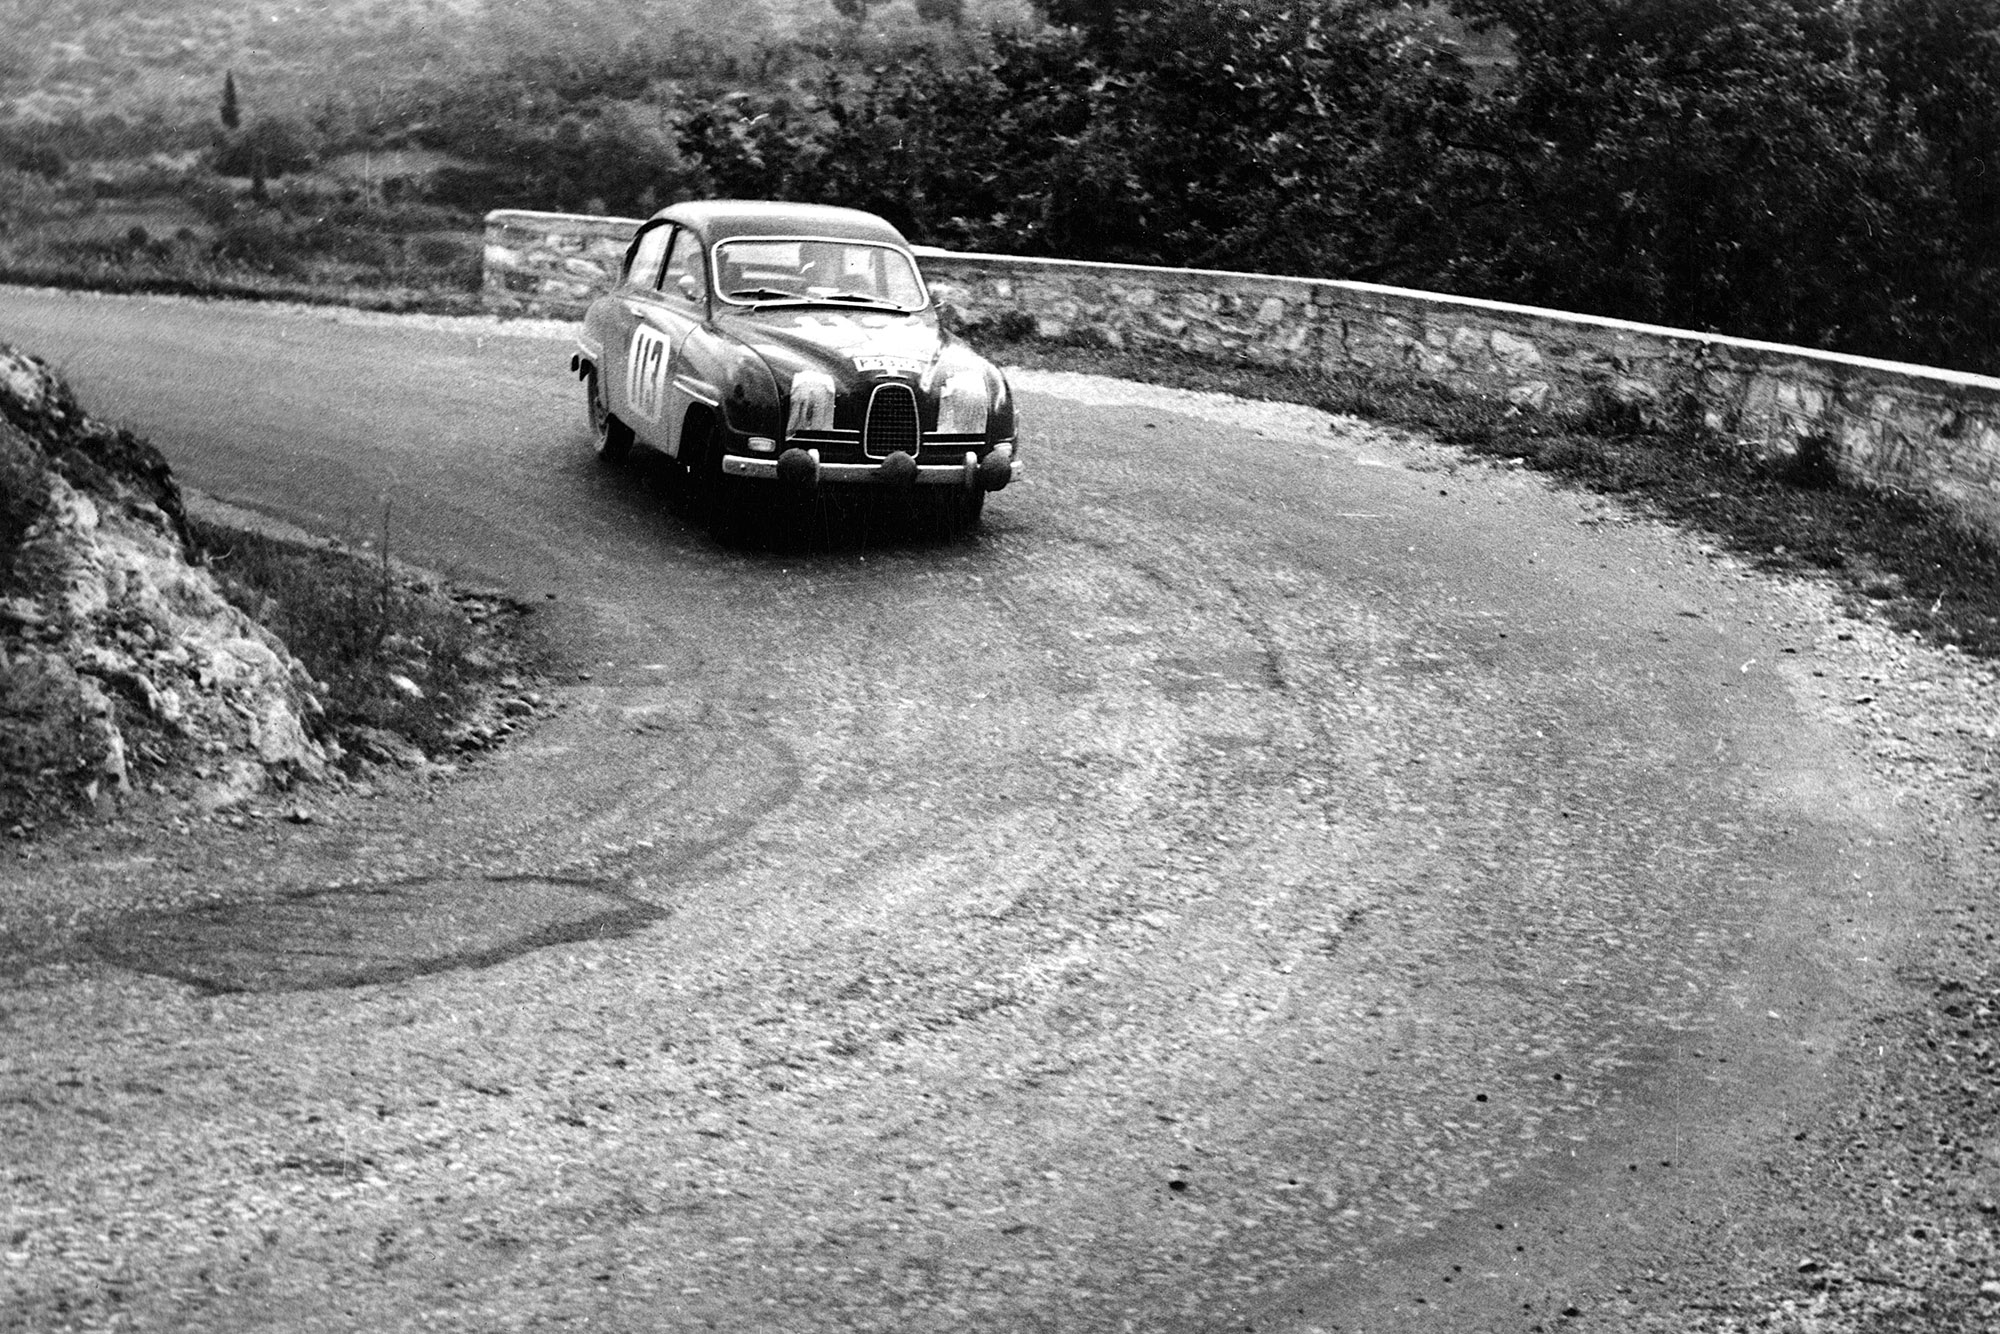 Erik Carlsson on a hairpin bend in a Saab 96 during the 1961 Acropolis Rally